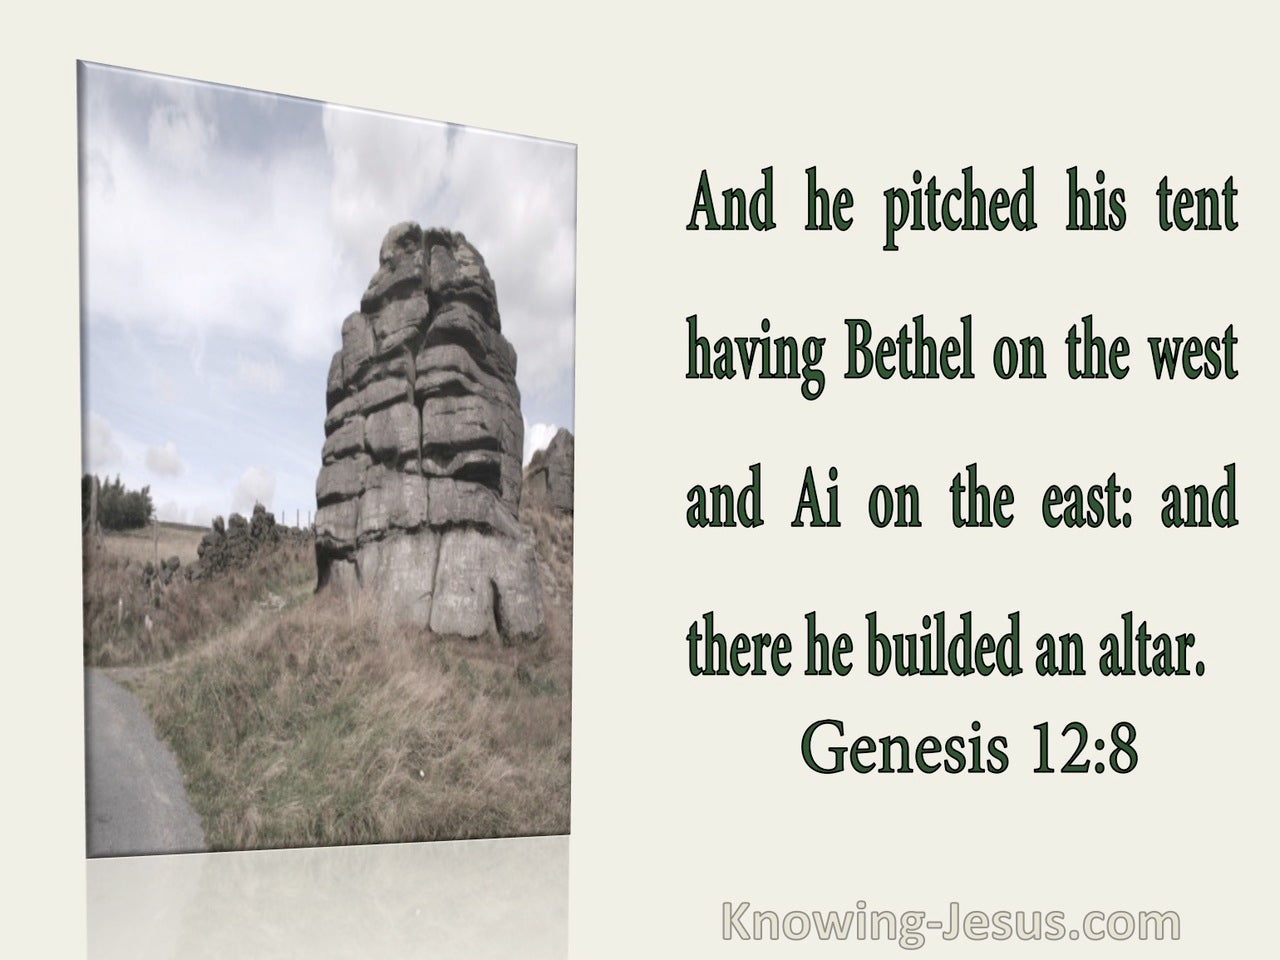 Genesis 12:8 He Pitched His Tent Having Bethel On the West And Ai On The East (utmost)01:06